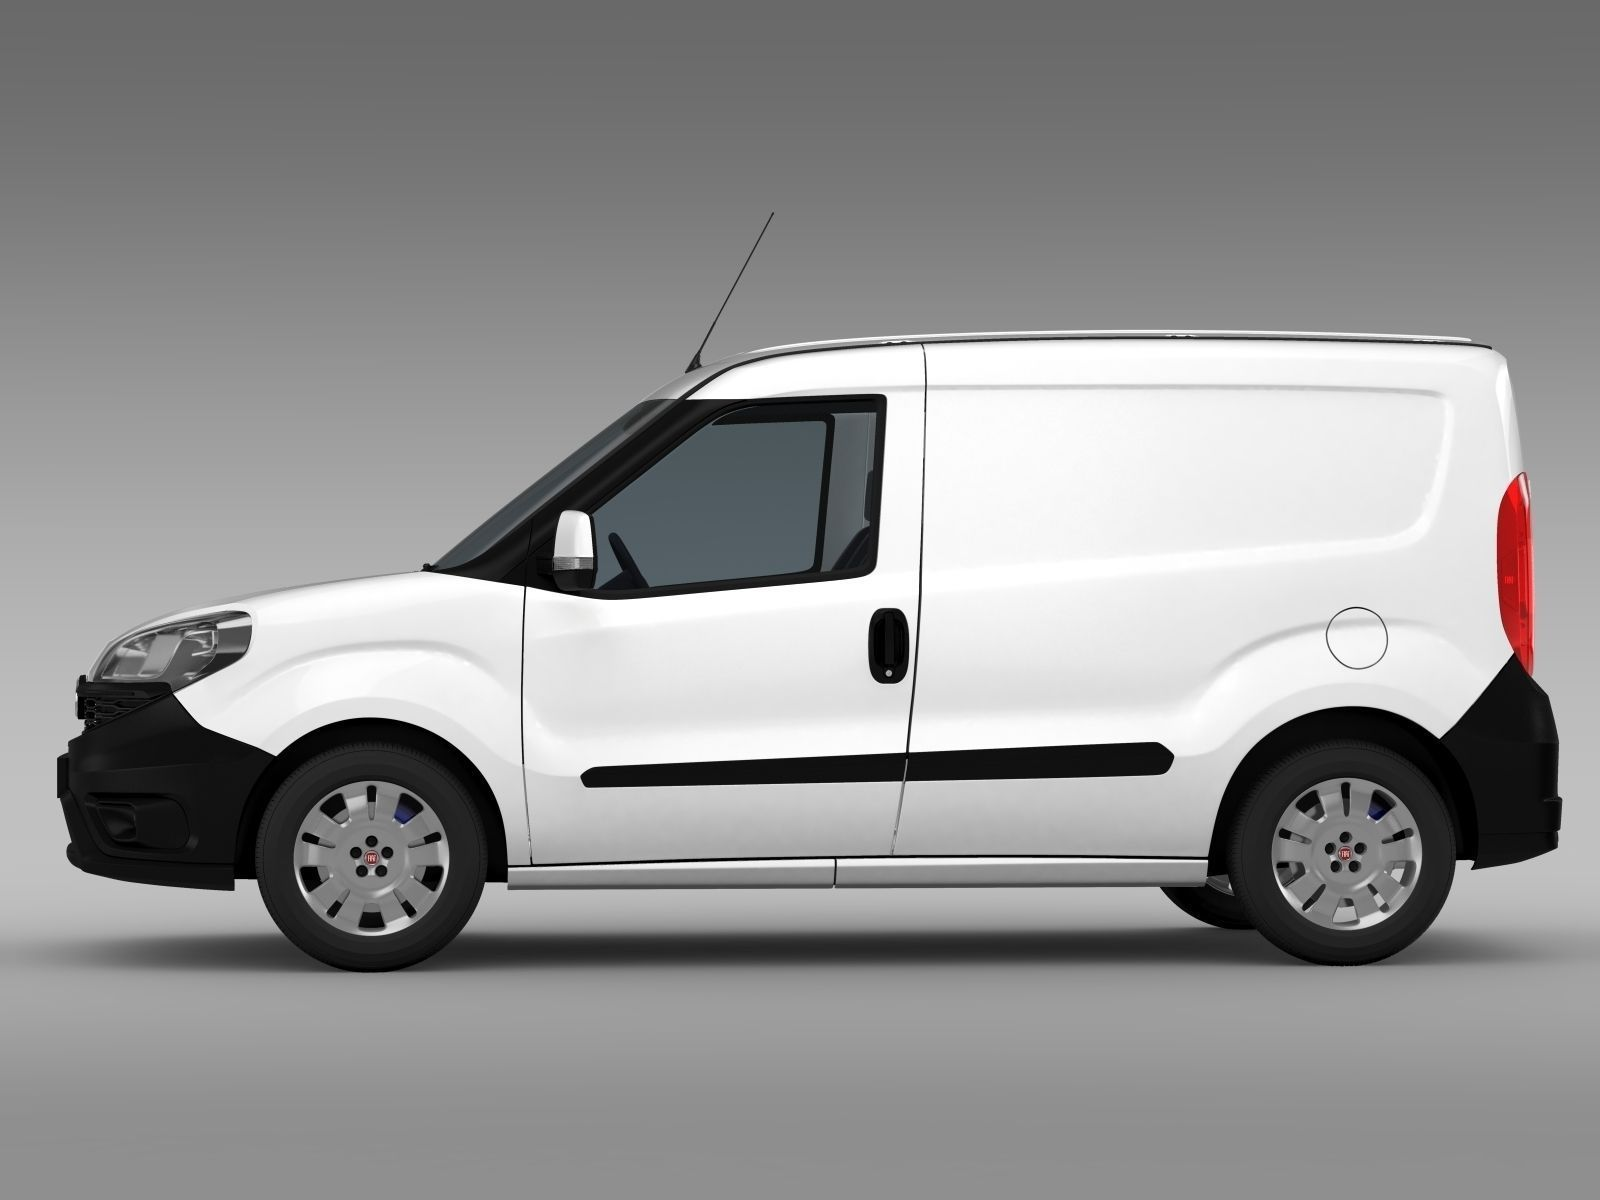 fiat doblo van price list fiat world test drive. Black Bedroom Furniture Sets. Home Design Ideas